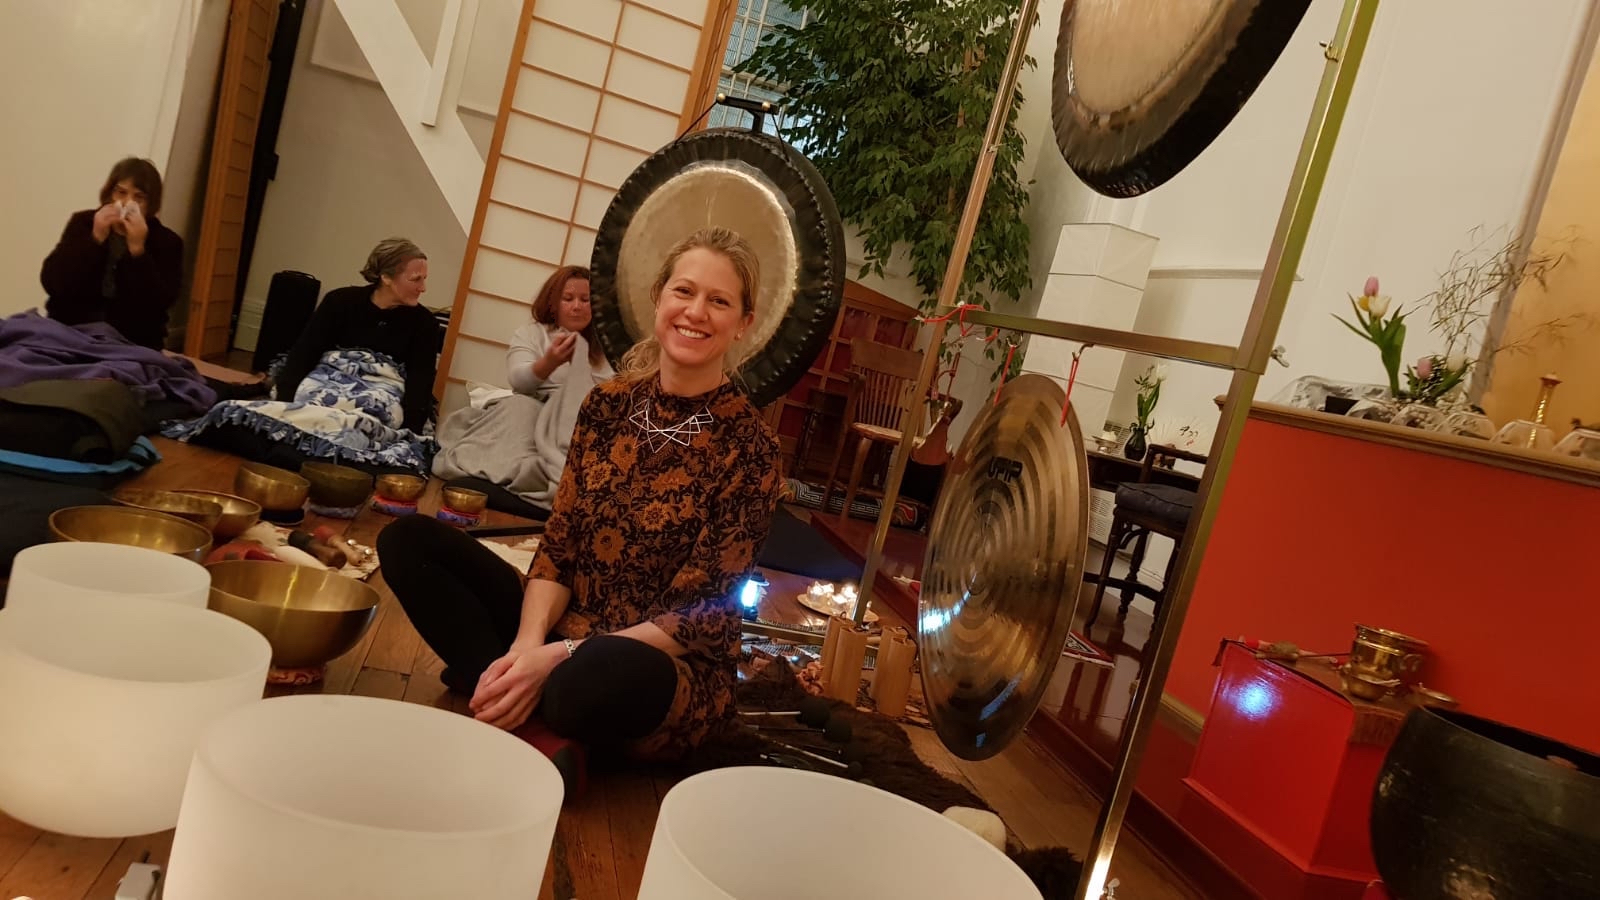 Start the Week with a restorative and uplifting Live Online Gong Bath